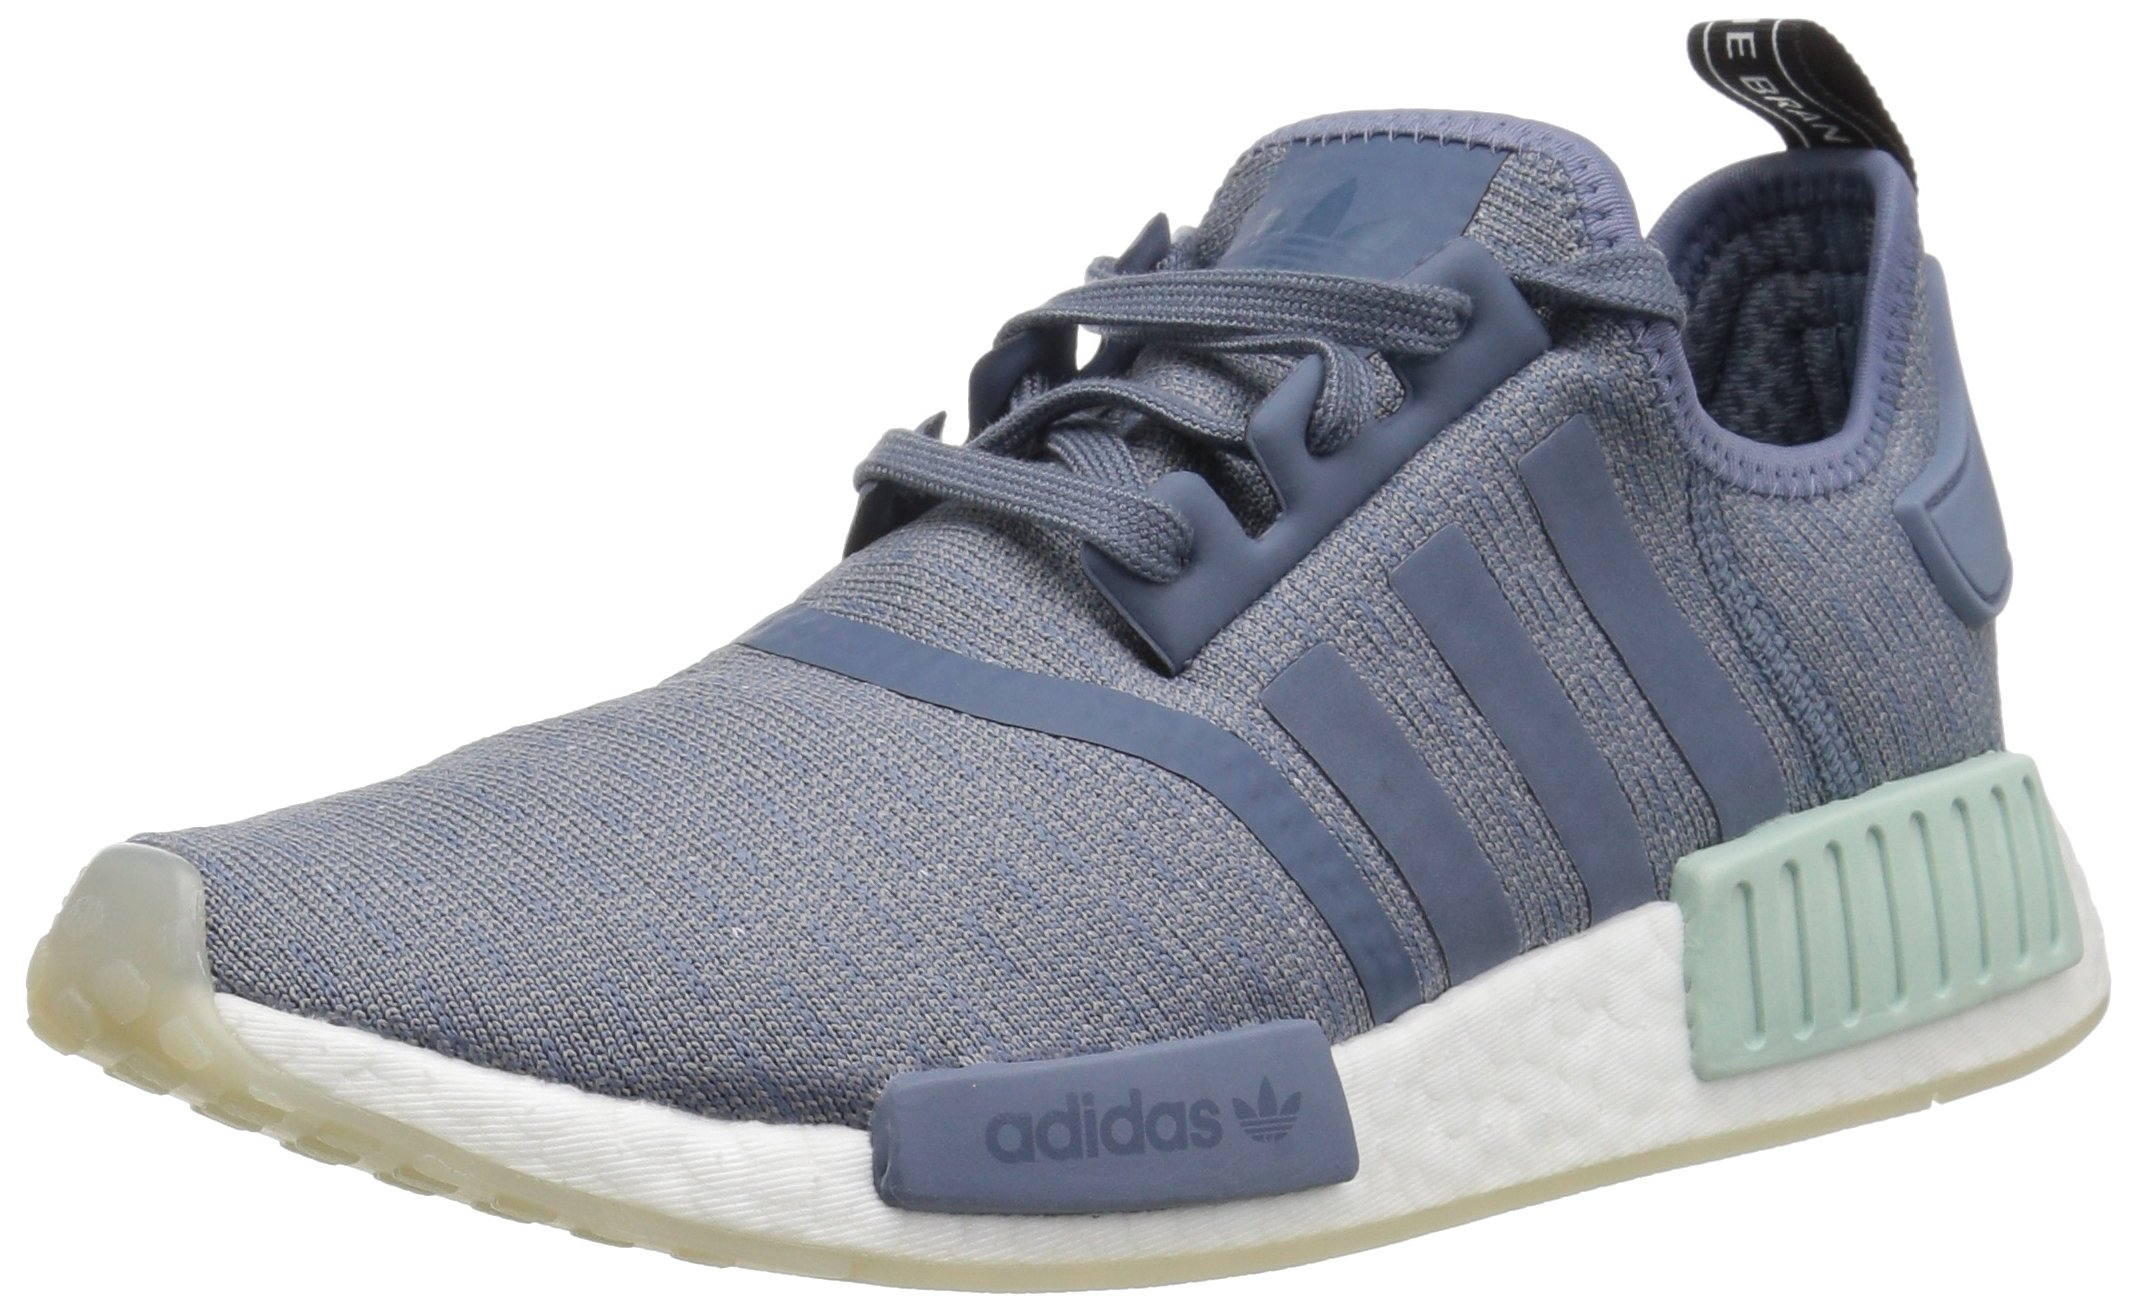 53638b474d306 Women adidas NMD R2 Shoes - Ash Pearl Crystal White - AQ0197.  65.00. adidas  Originals Women s NMD R1 Running Shoe